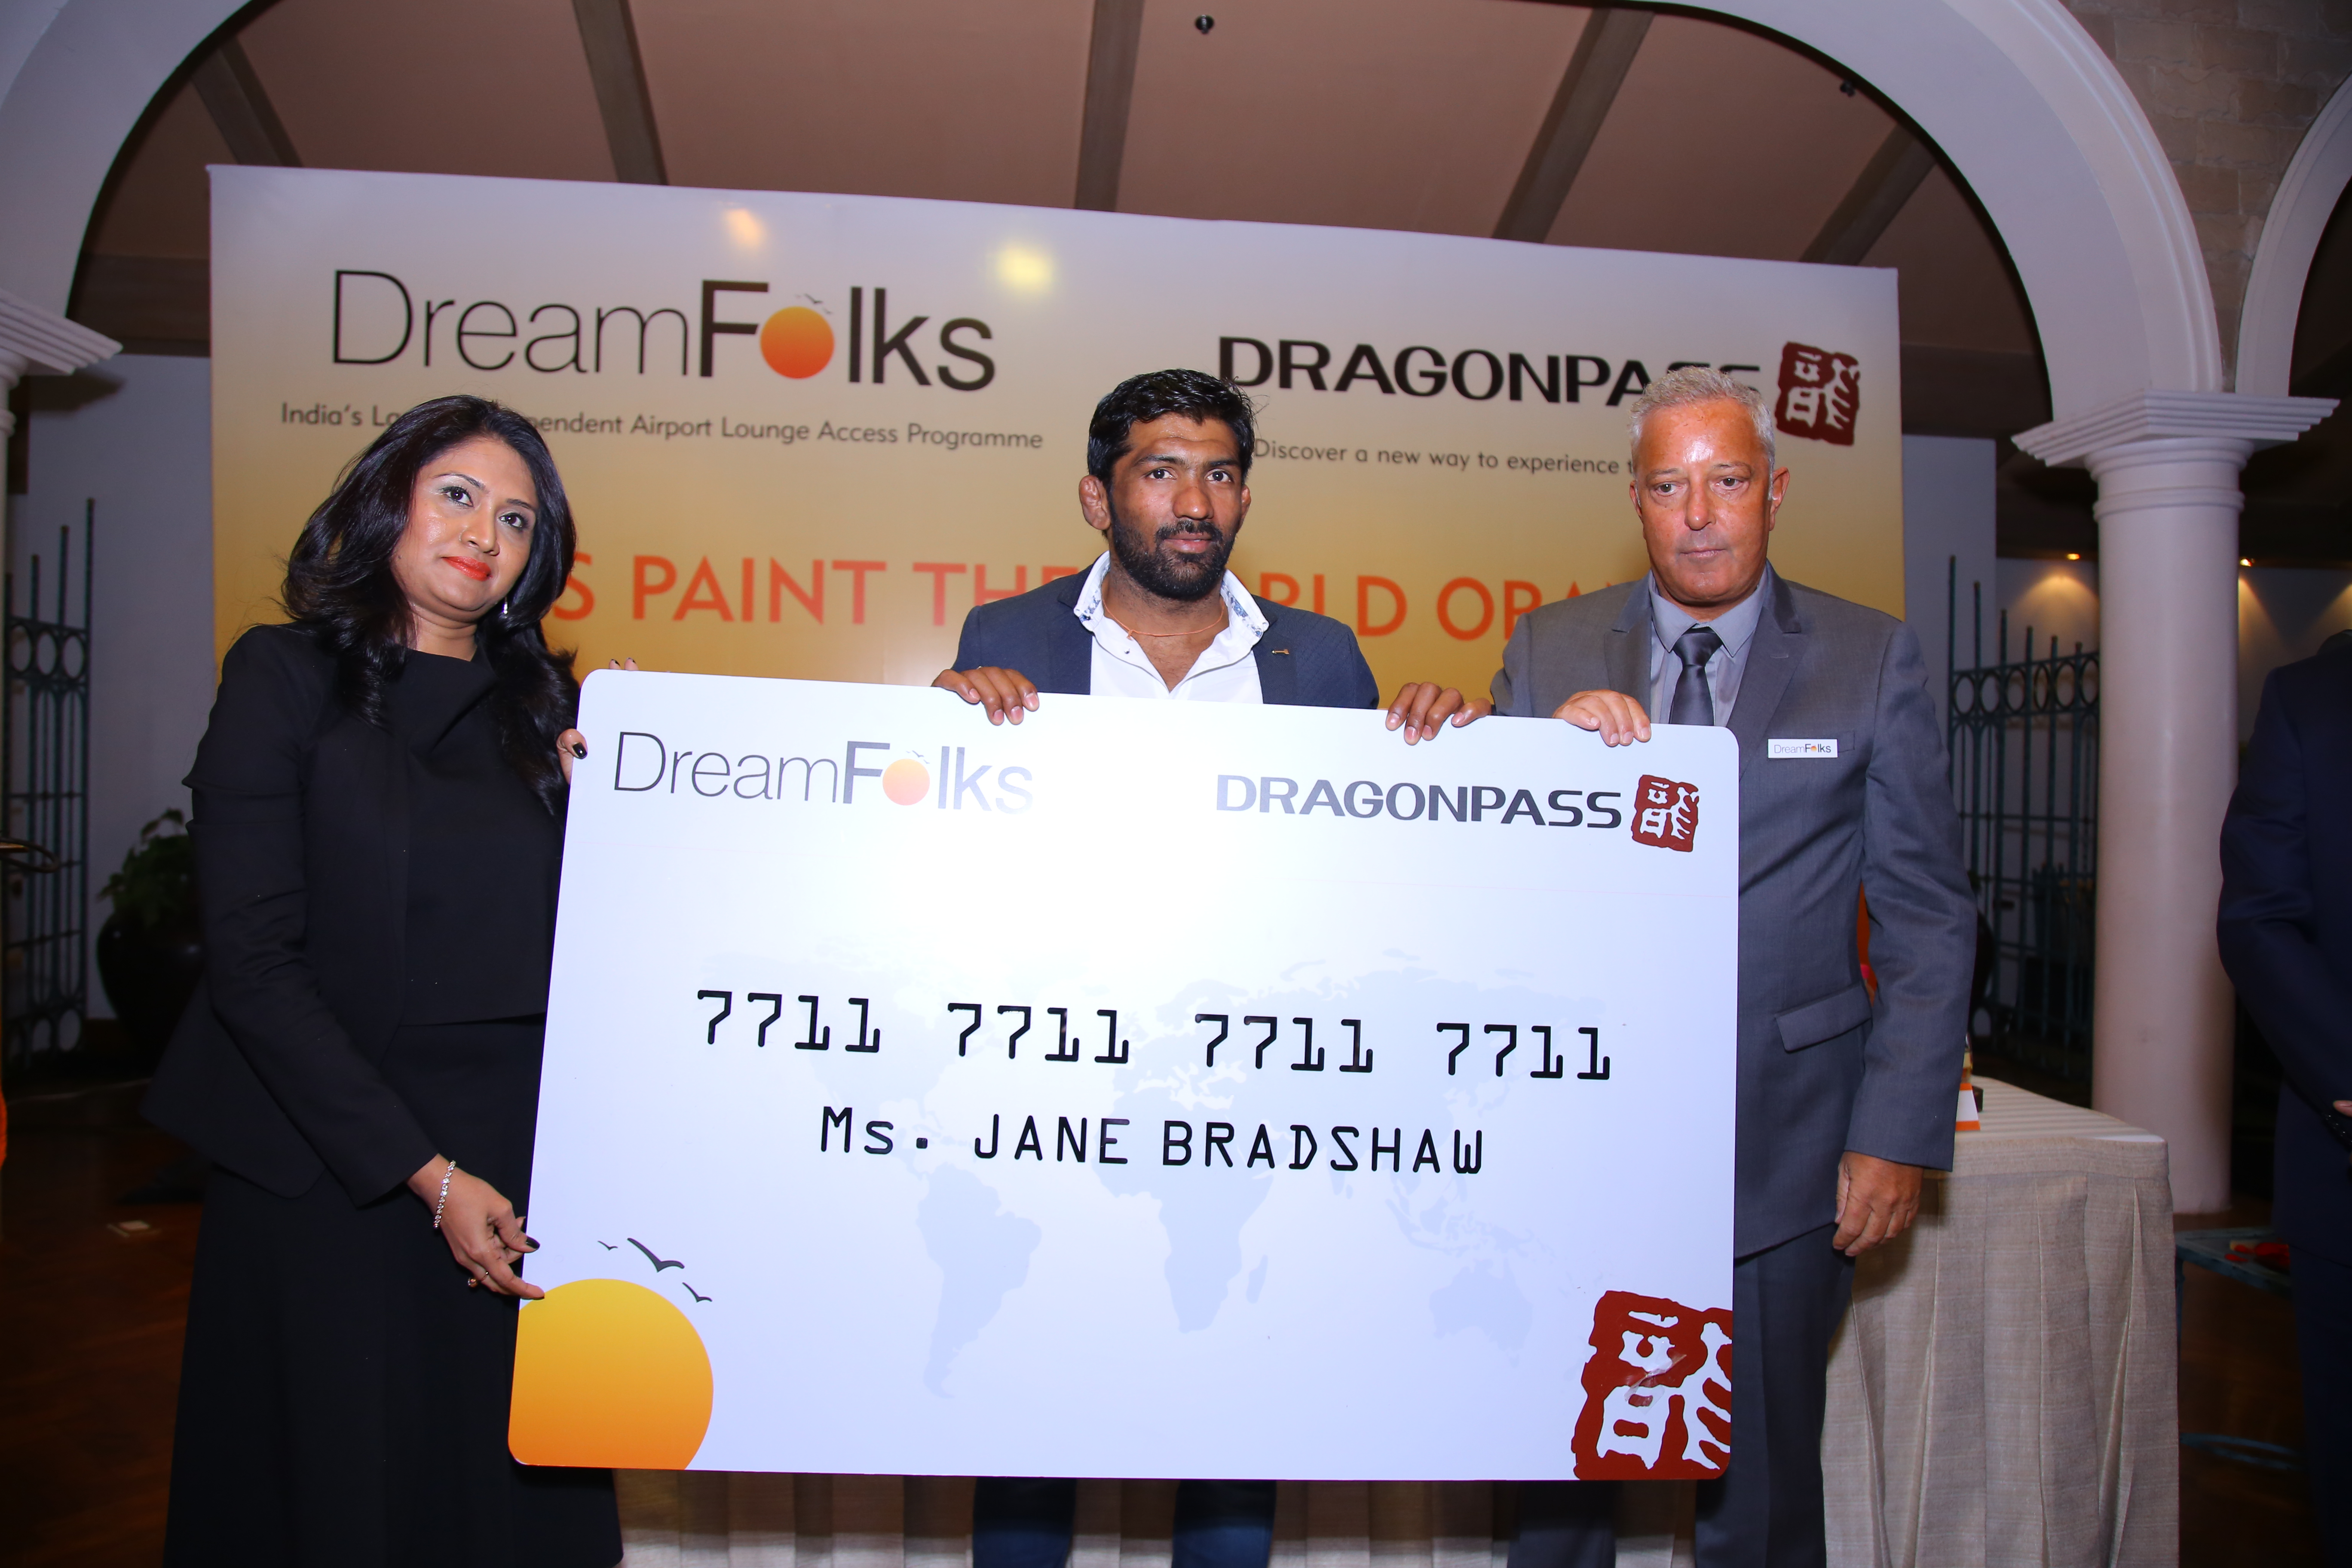 DreamFolks DragonPass alliance to make travel experience global